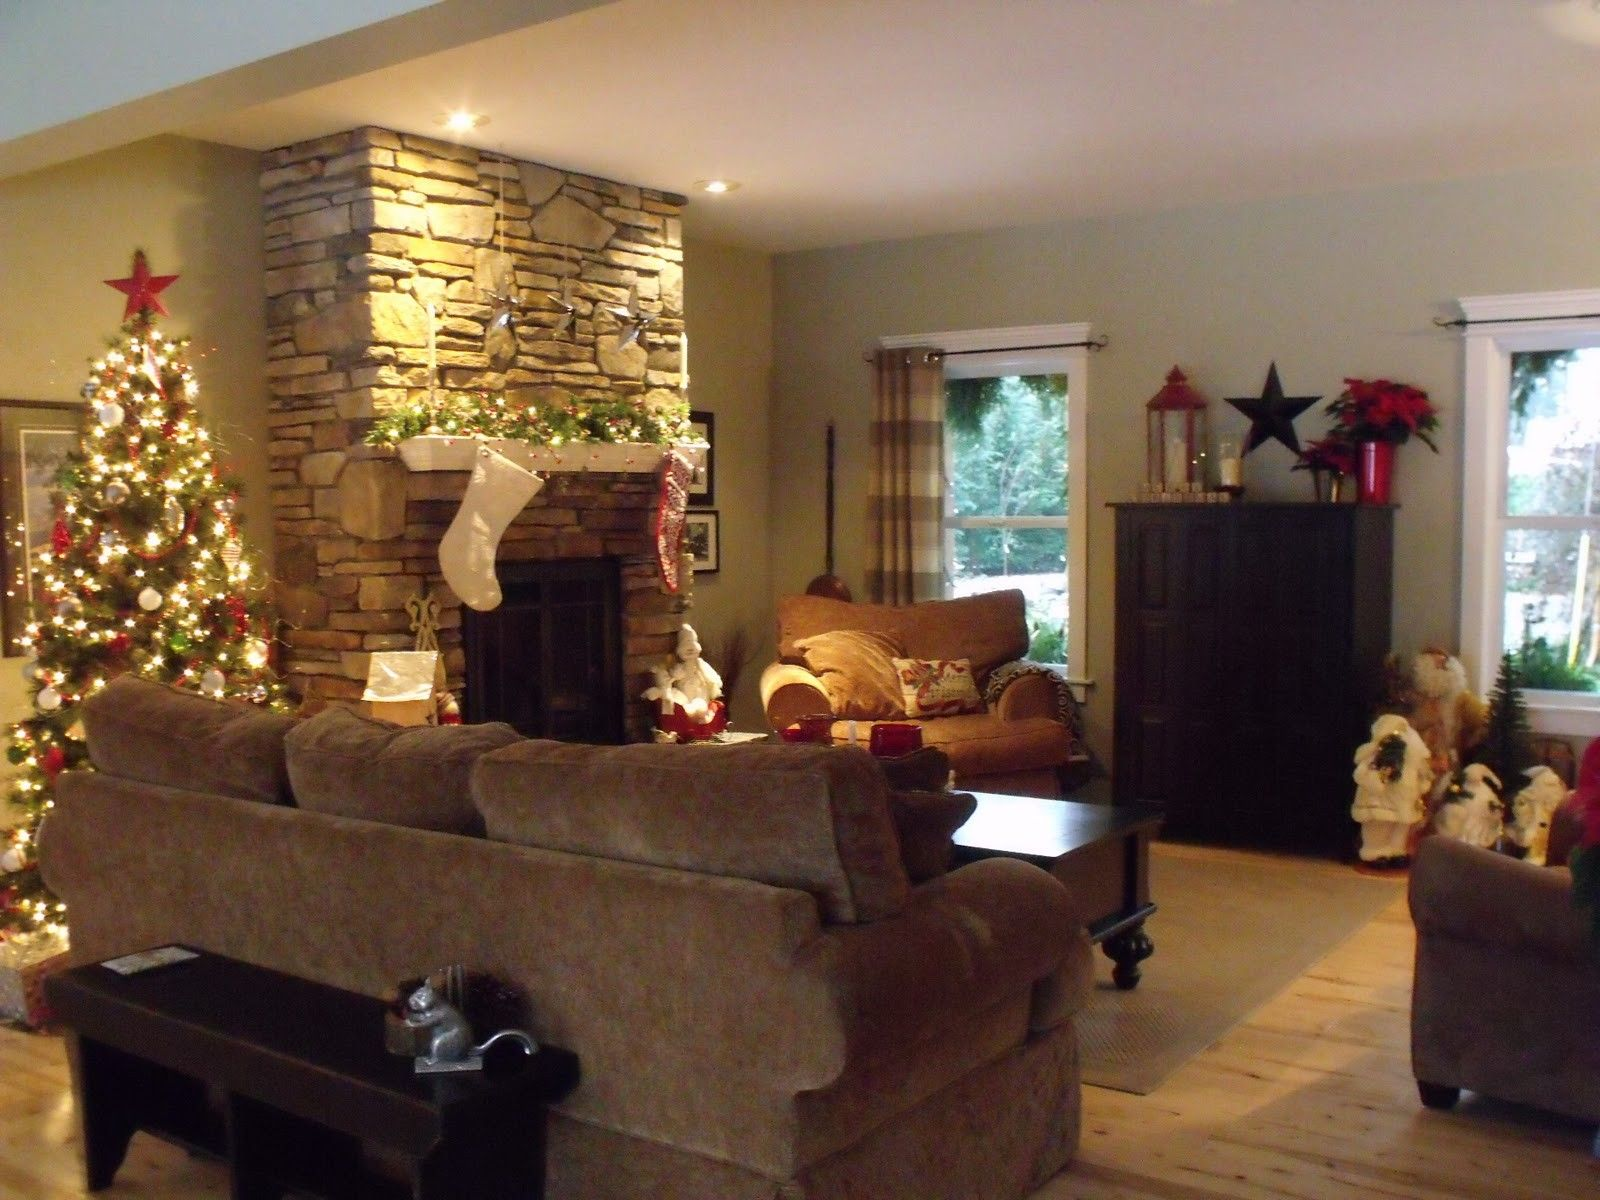 Christmas Living Room Decorating Ideas Decor warm and cozy decorating ideas warm and cozy living room design